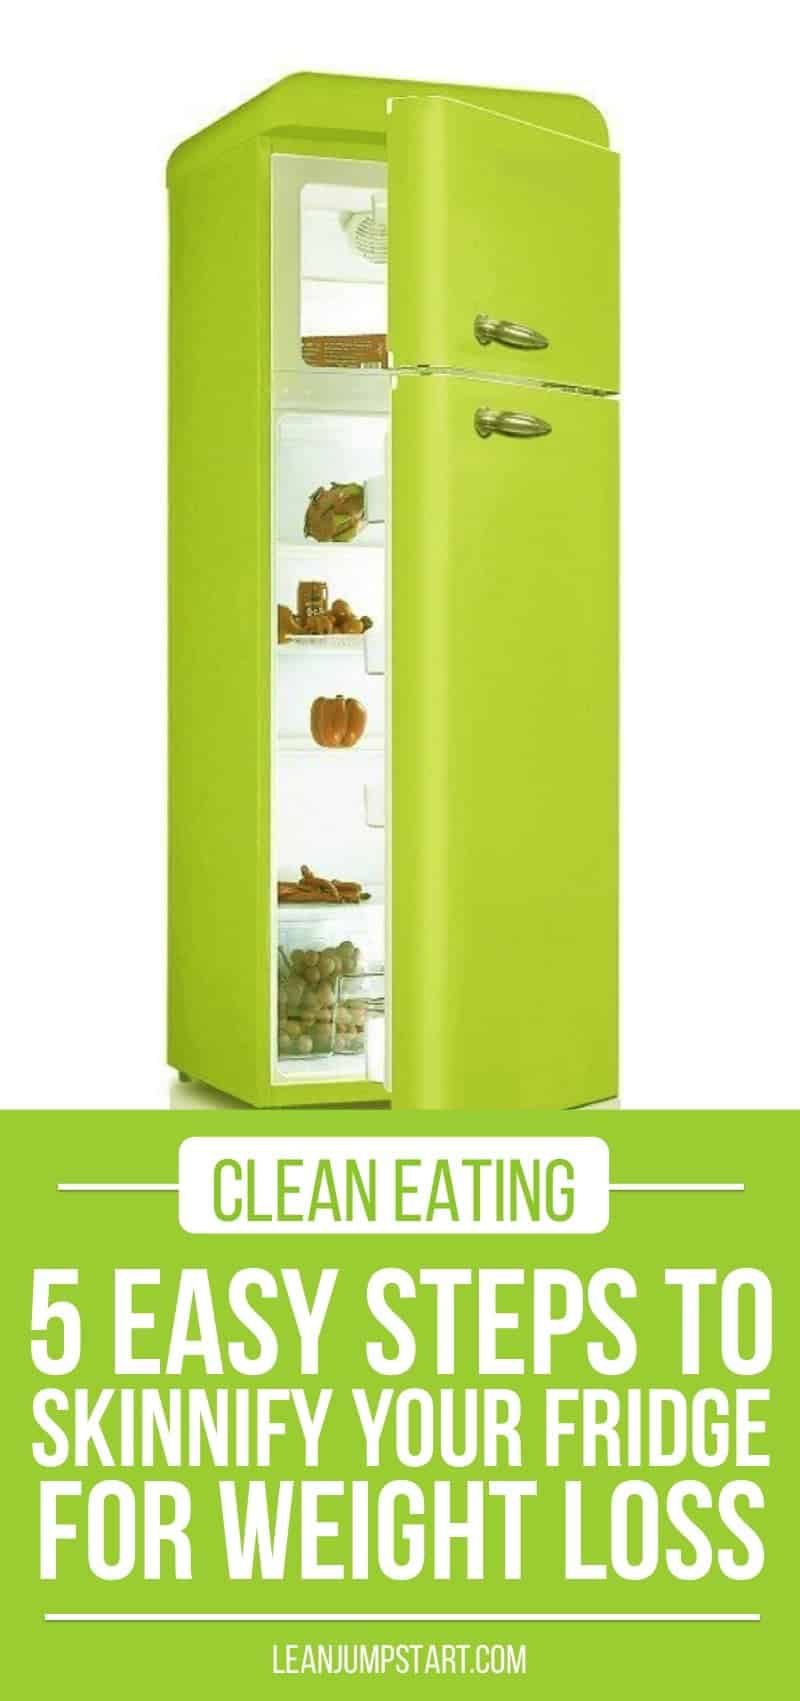 Clean eating: 5 easy steps to skinnify your fridge for weight loss